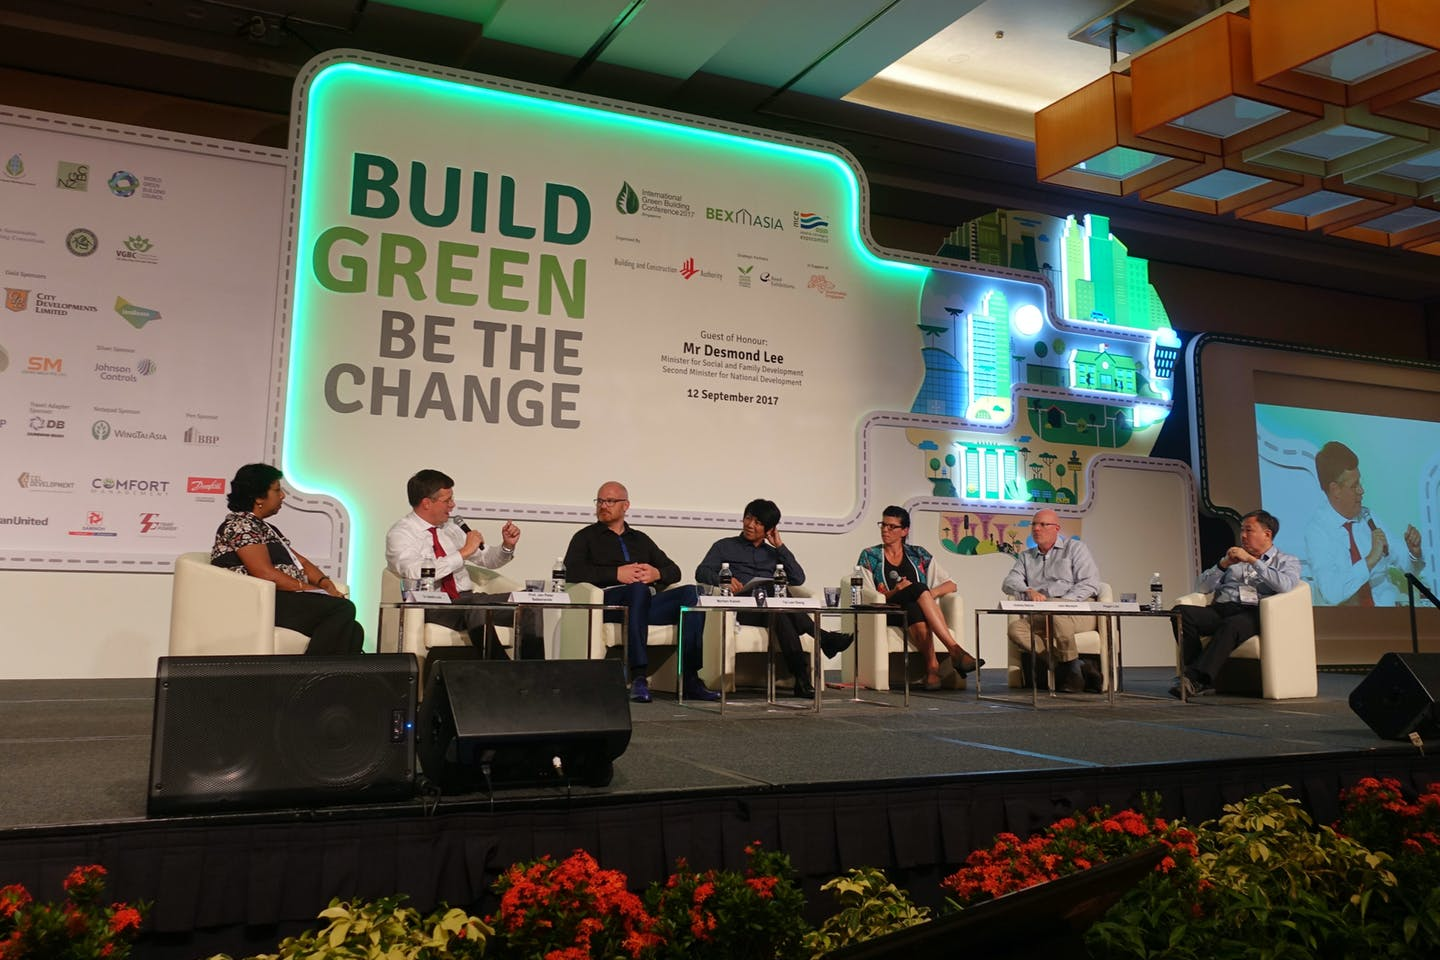 Leadership plenary at the International Green Building Conference 2017 held in Singapore